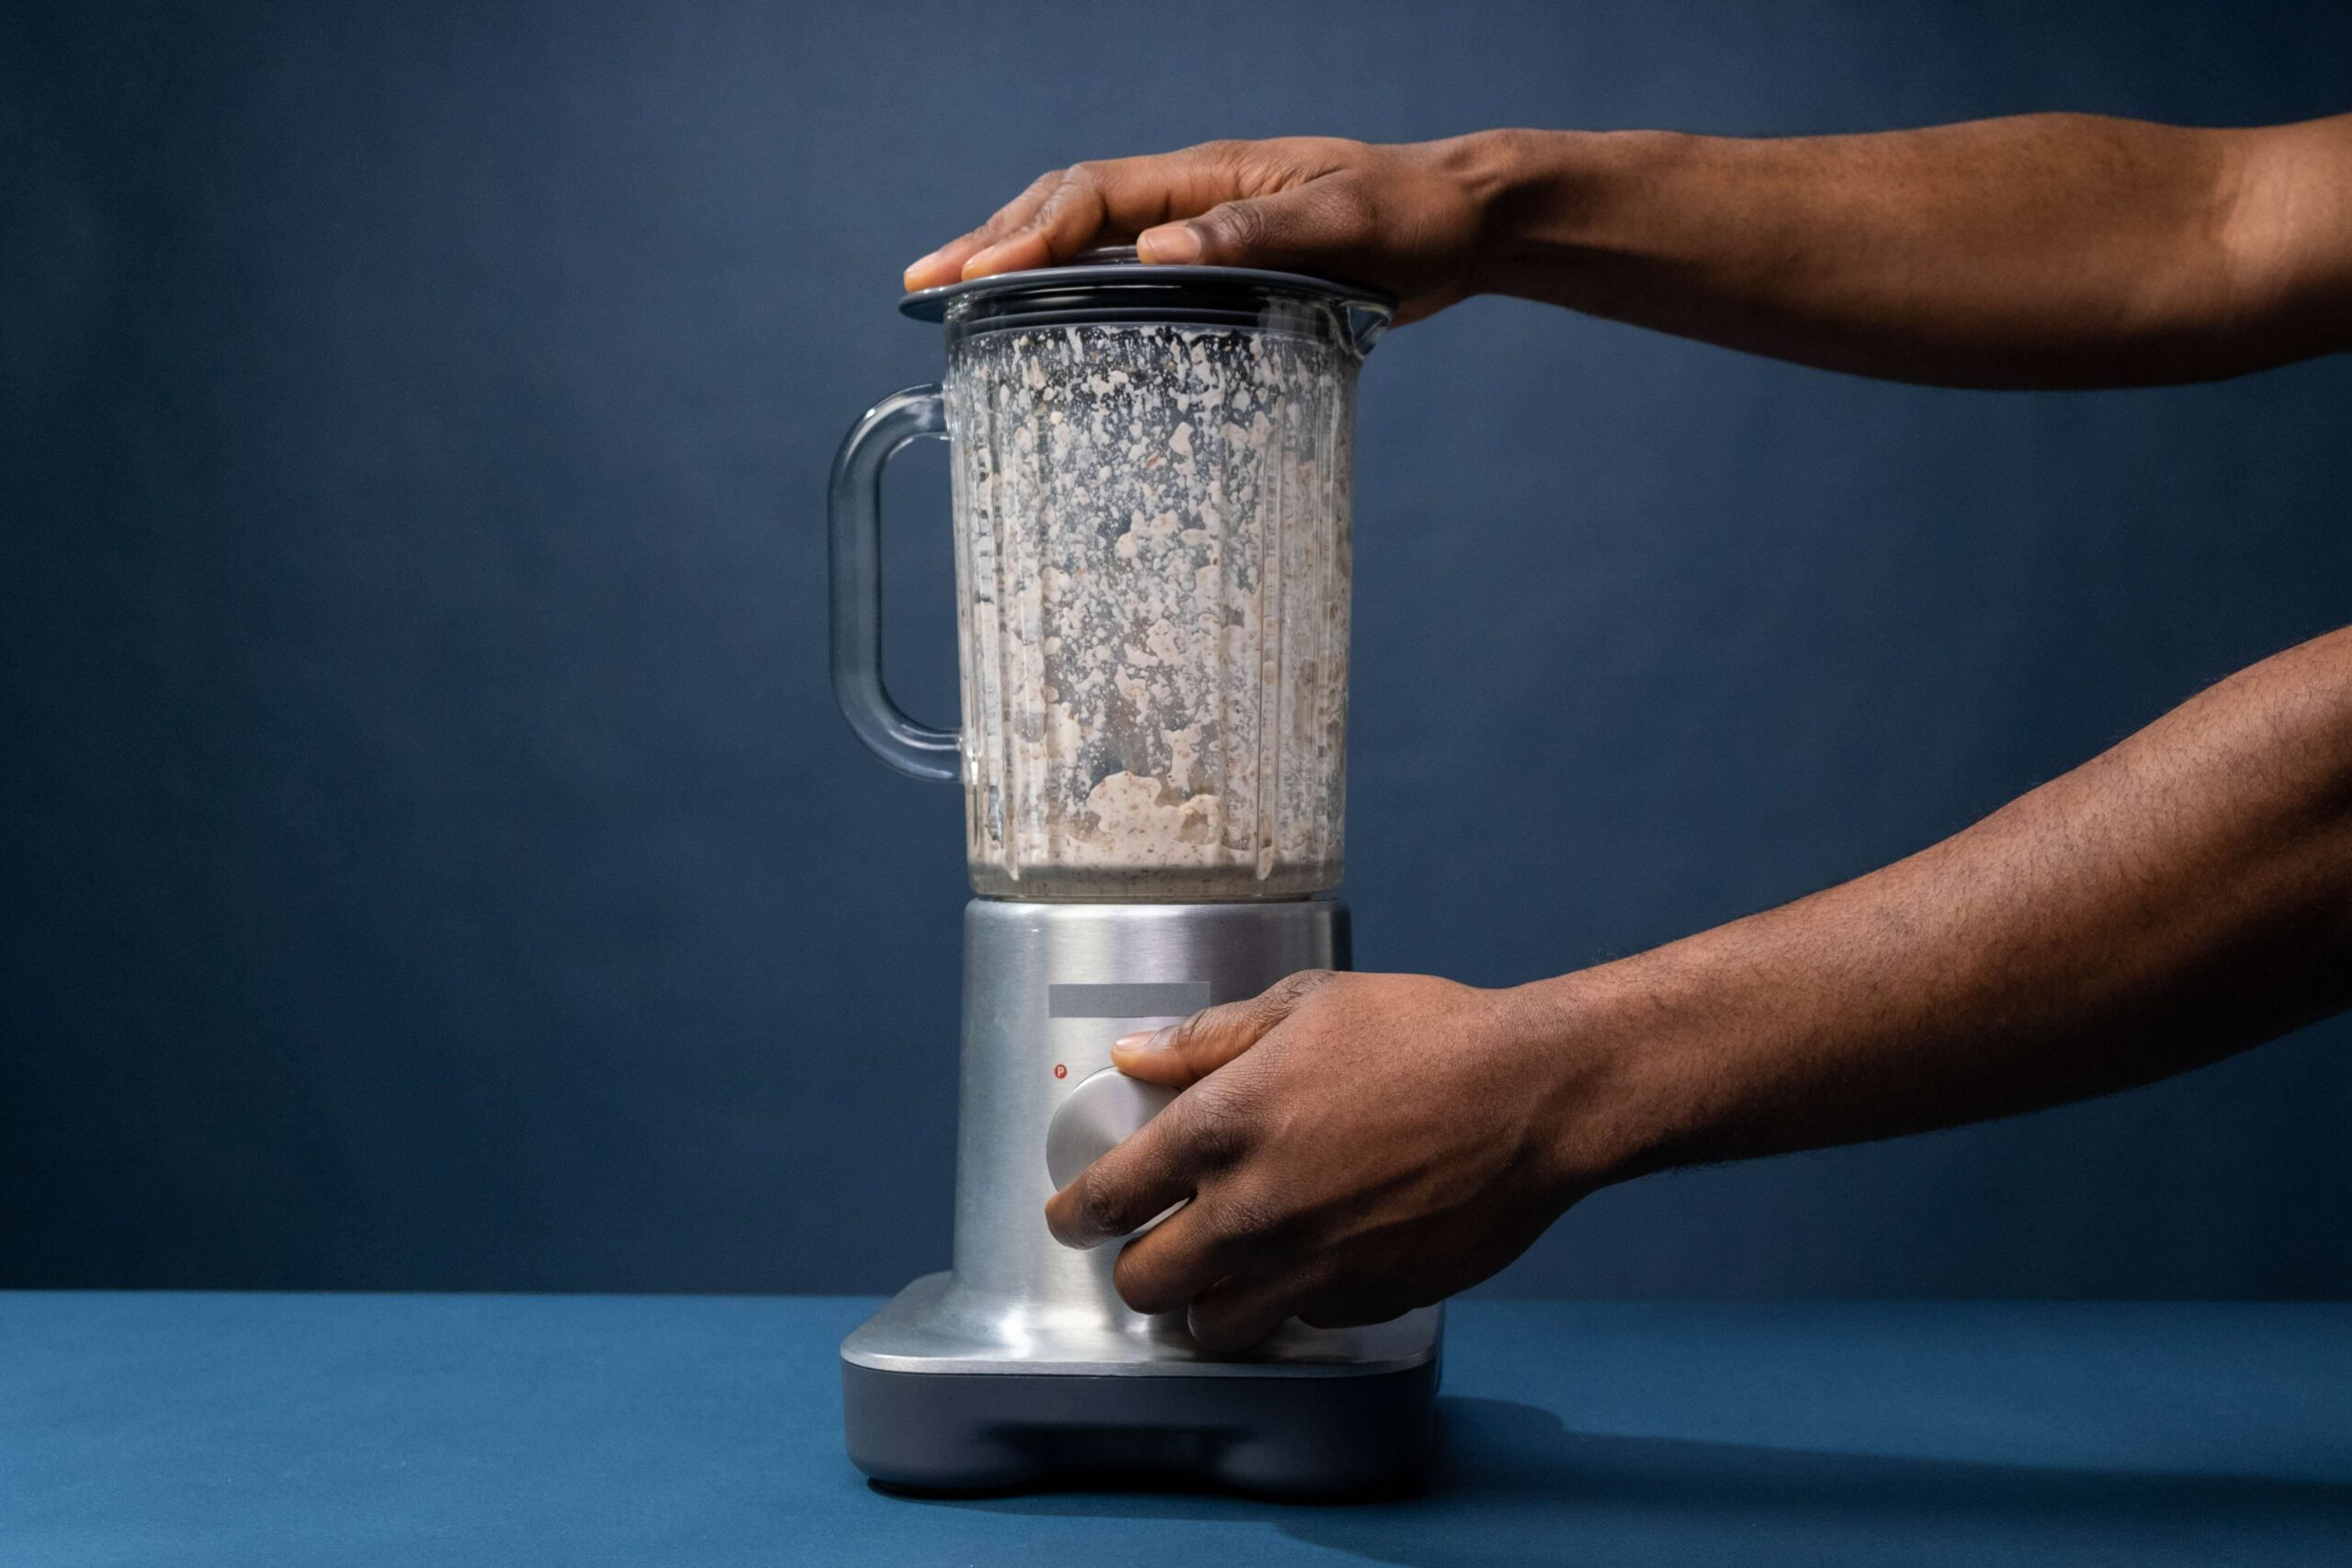 Is Masticating Juicer the Same as Cold Press - People are often confused